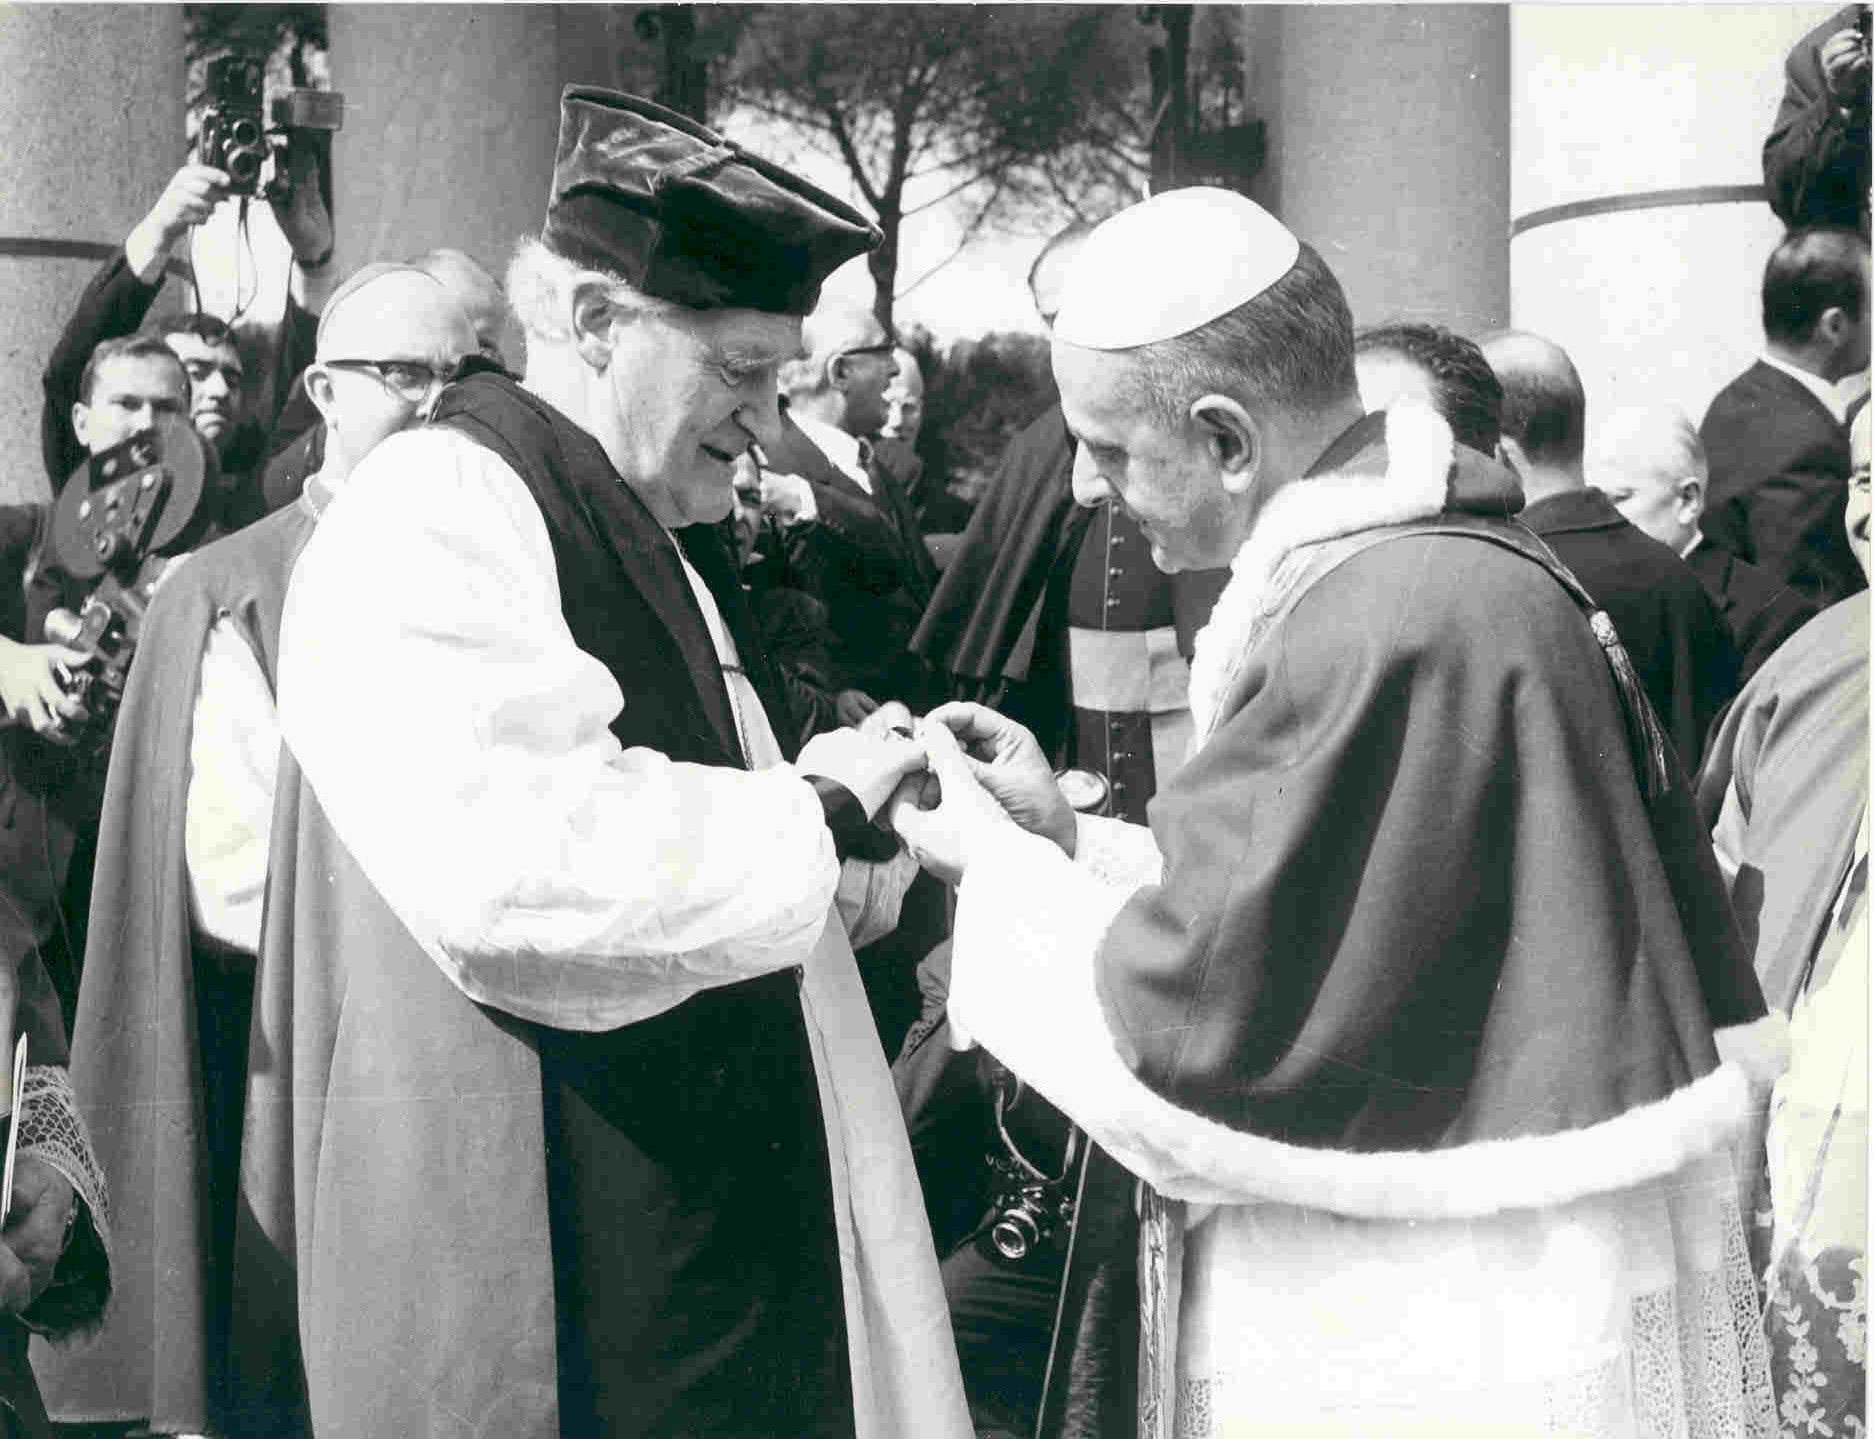 Pope Paul VI gives Archbishop Michael Ramsey his episcopal ring (1966-3-24)